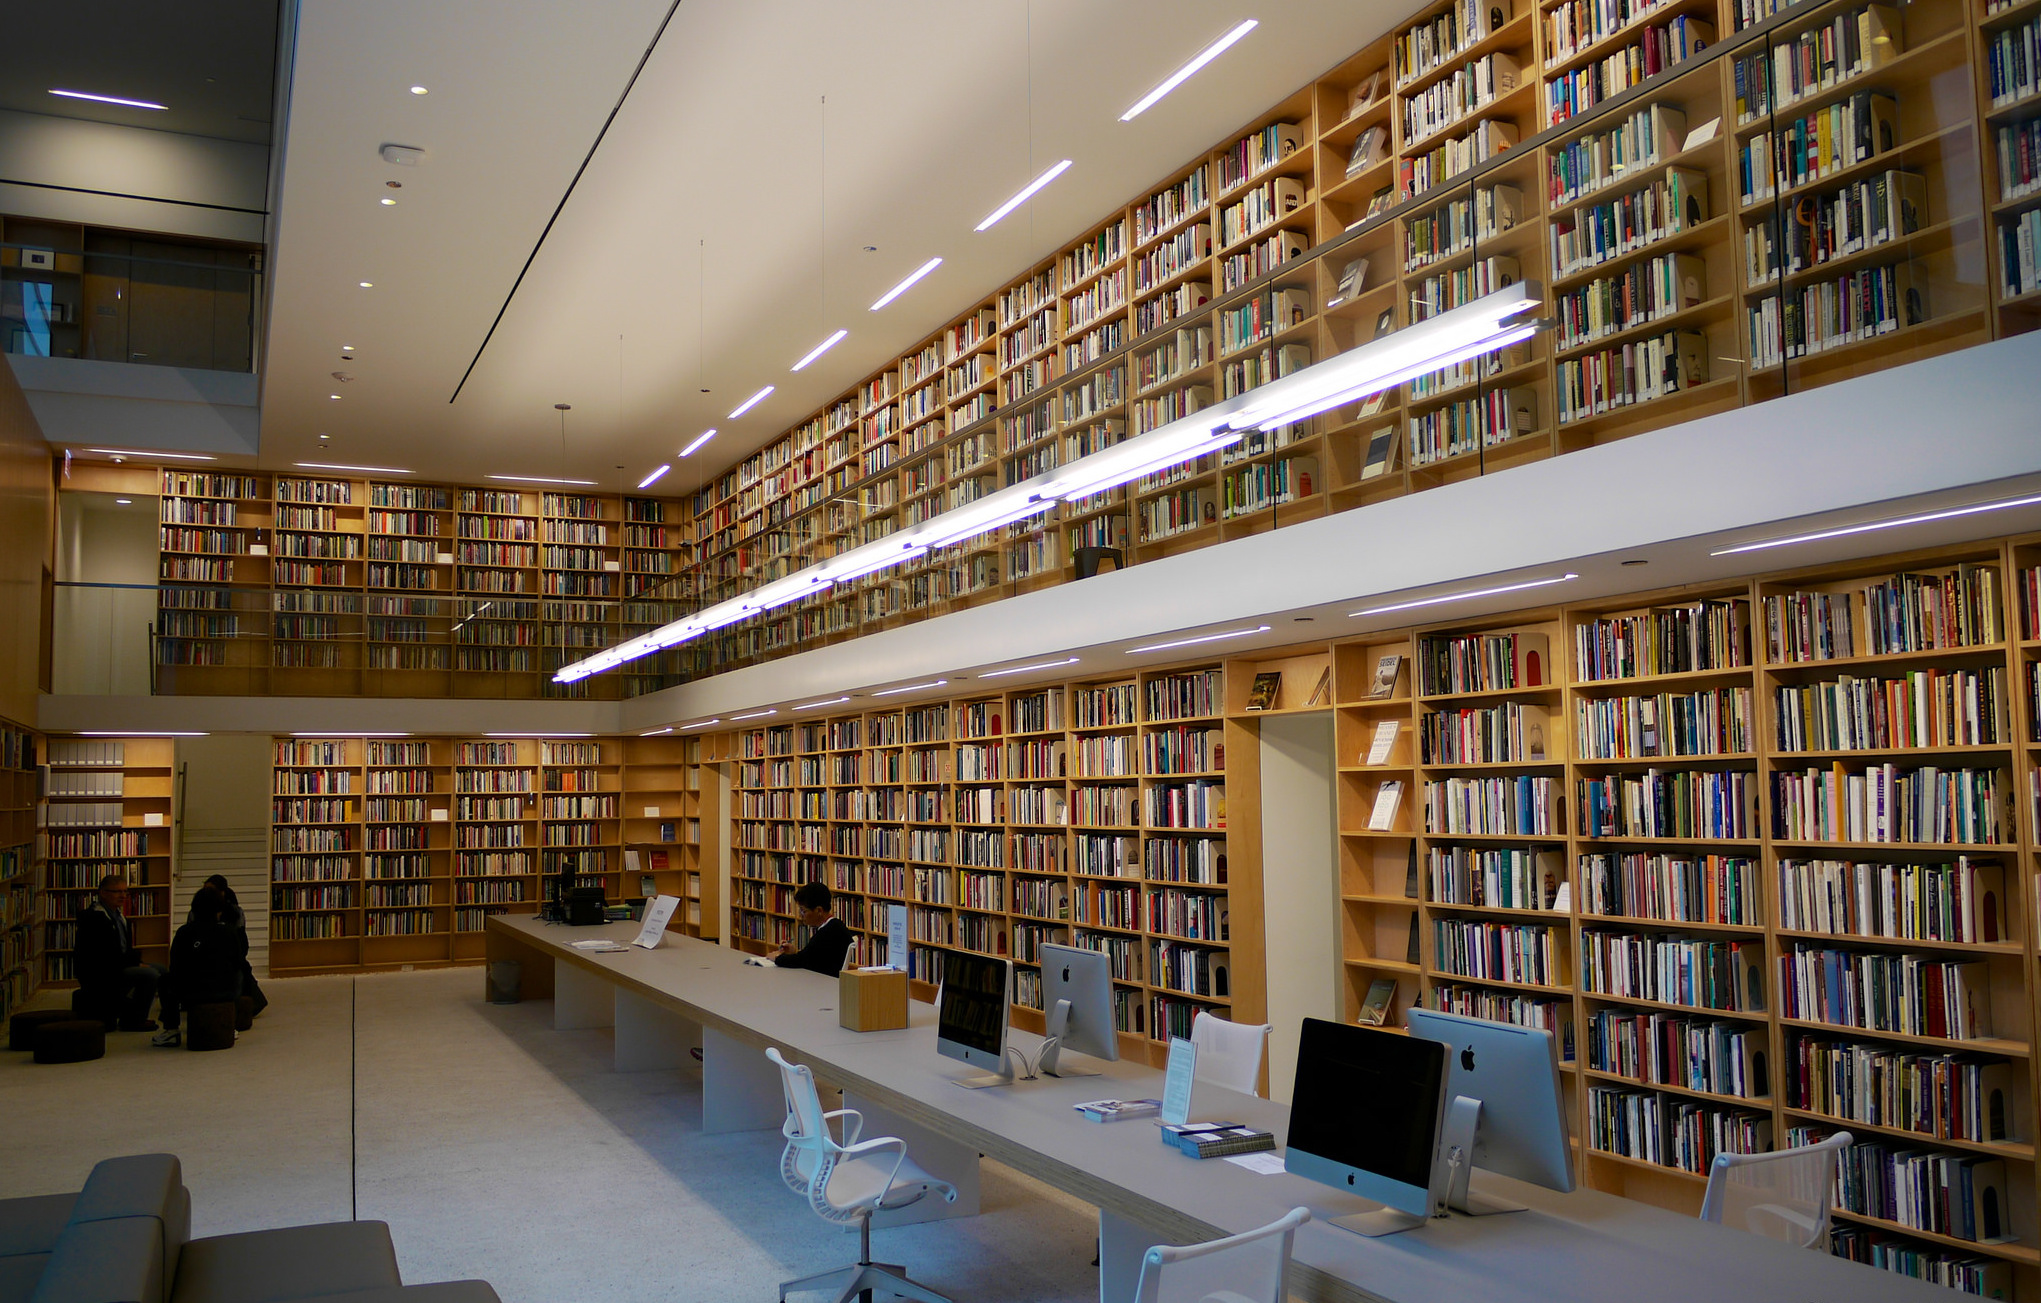 Poetry Foundation Library | © Steven Vance / Flickr